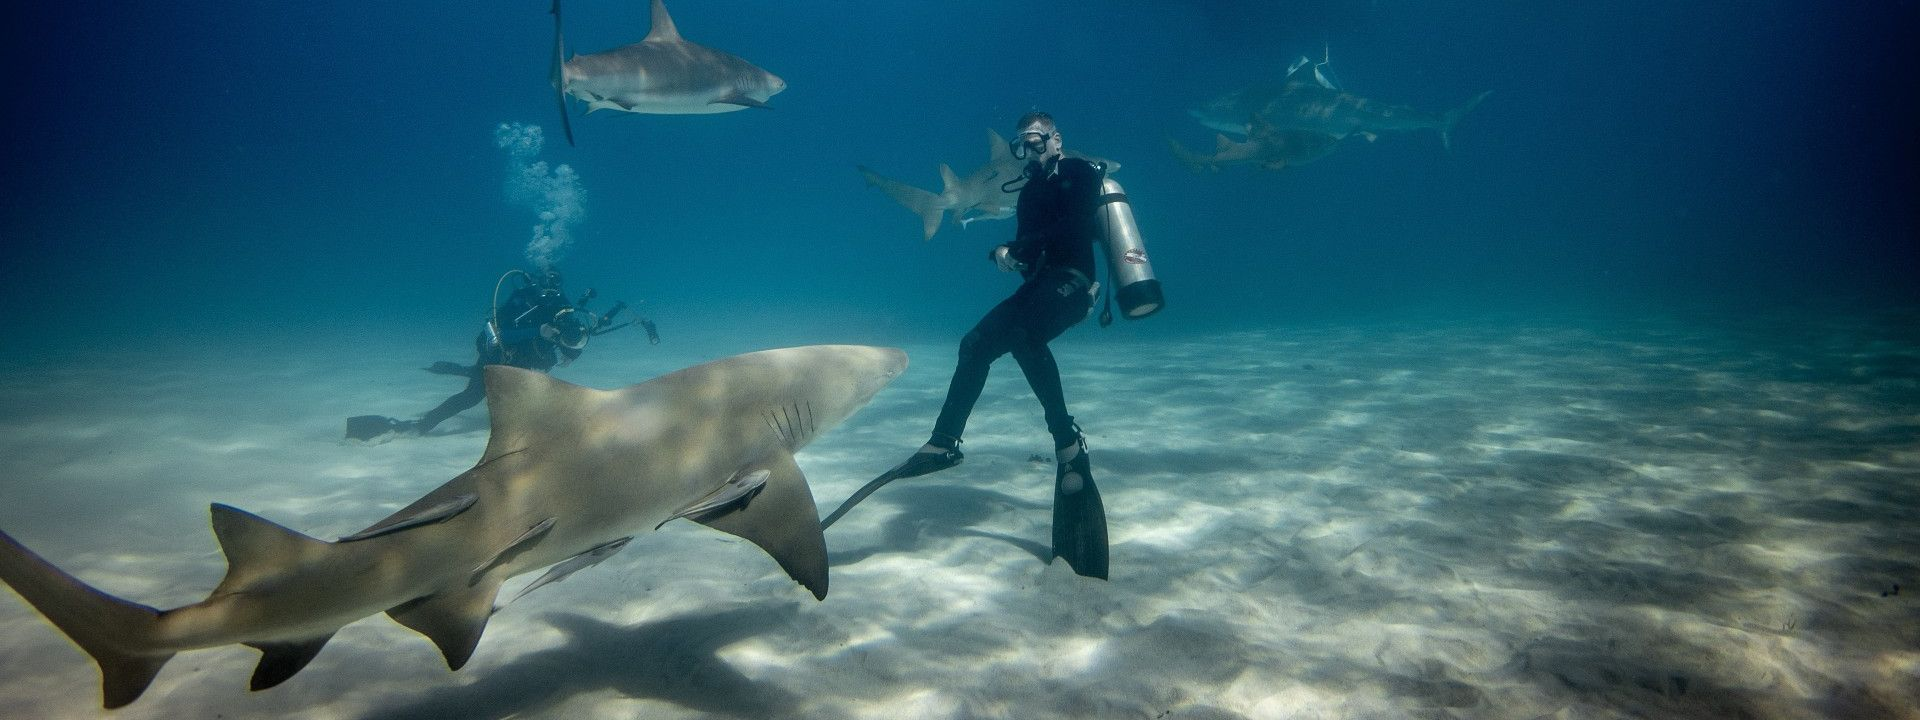 Protecting sharks is protecting the oceans